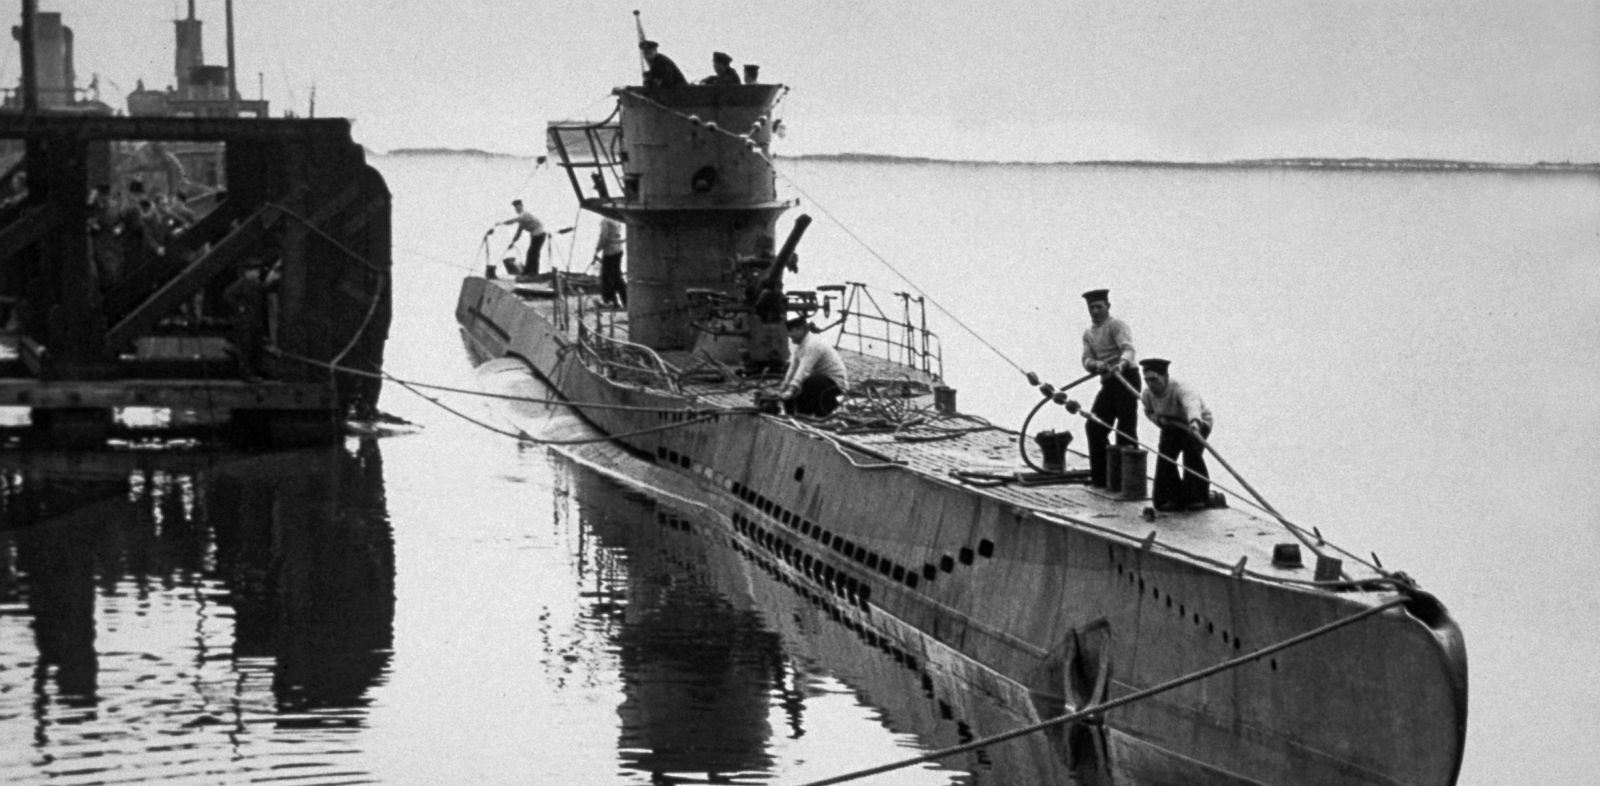 PHOTO: A World War II era German U-Boat is shown in this circa 1941 photo.